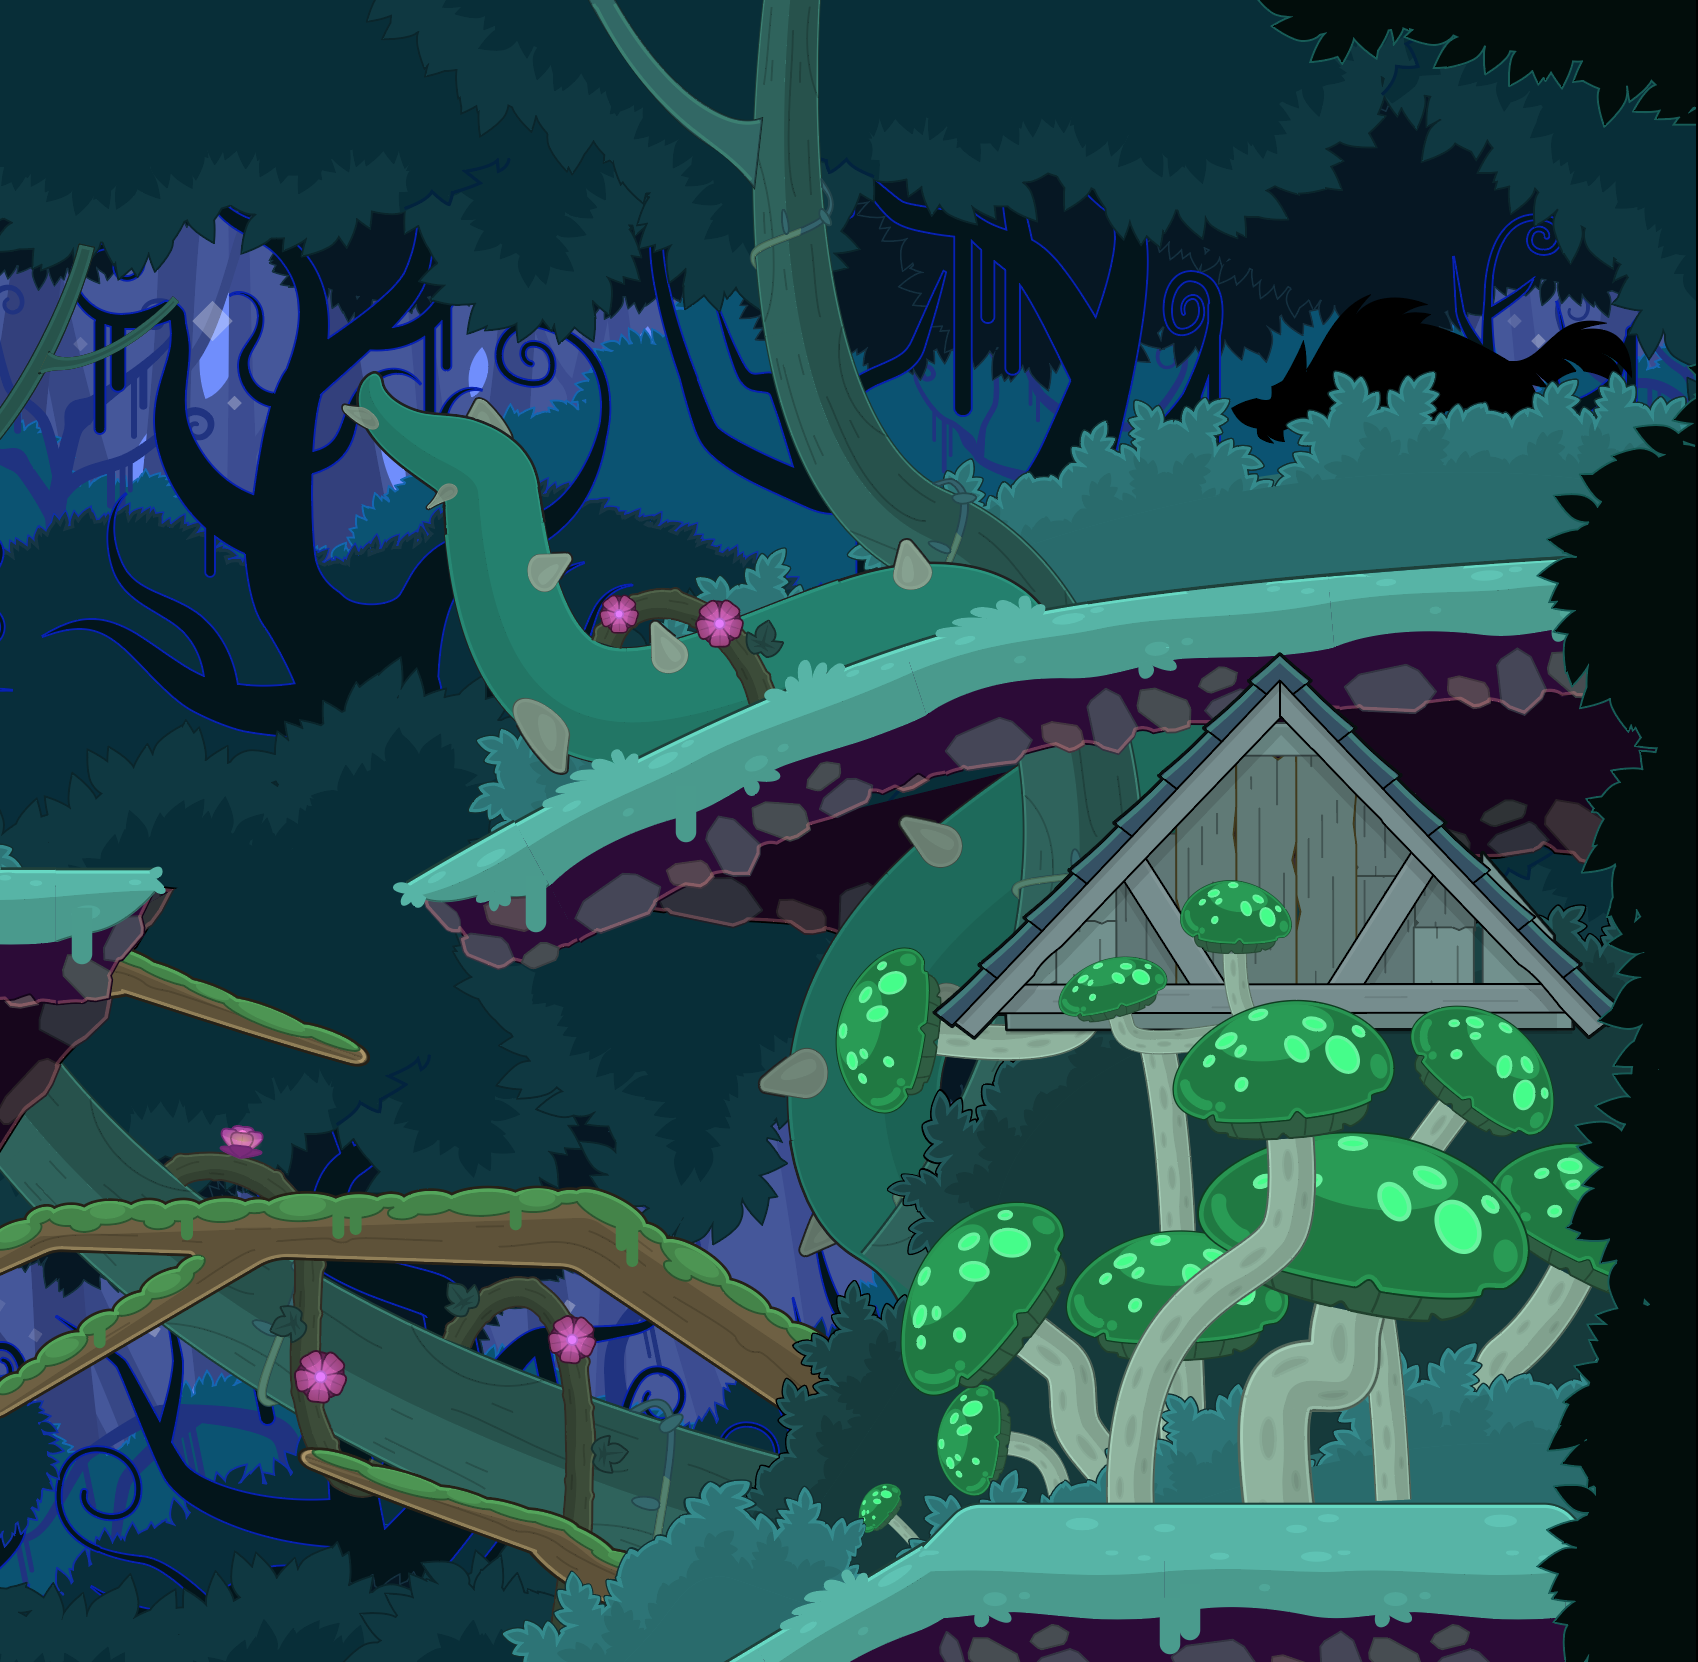 Close up view of Poptropica Fairy Tale Island with vines